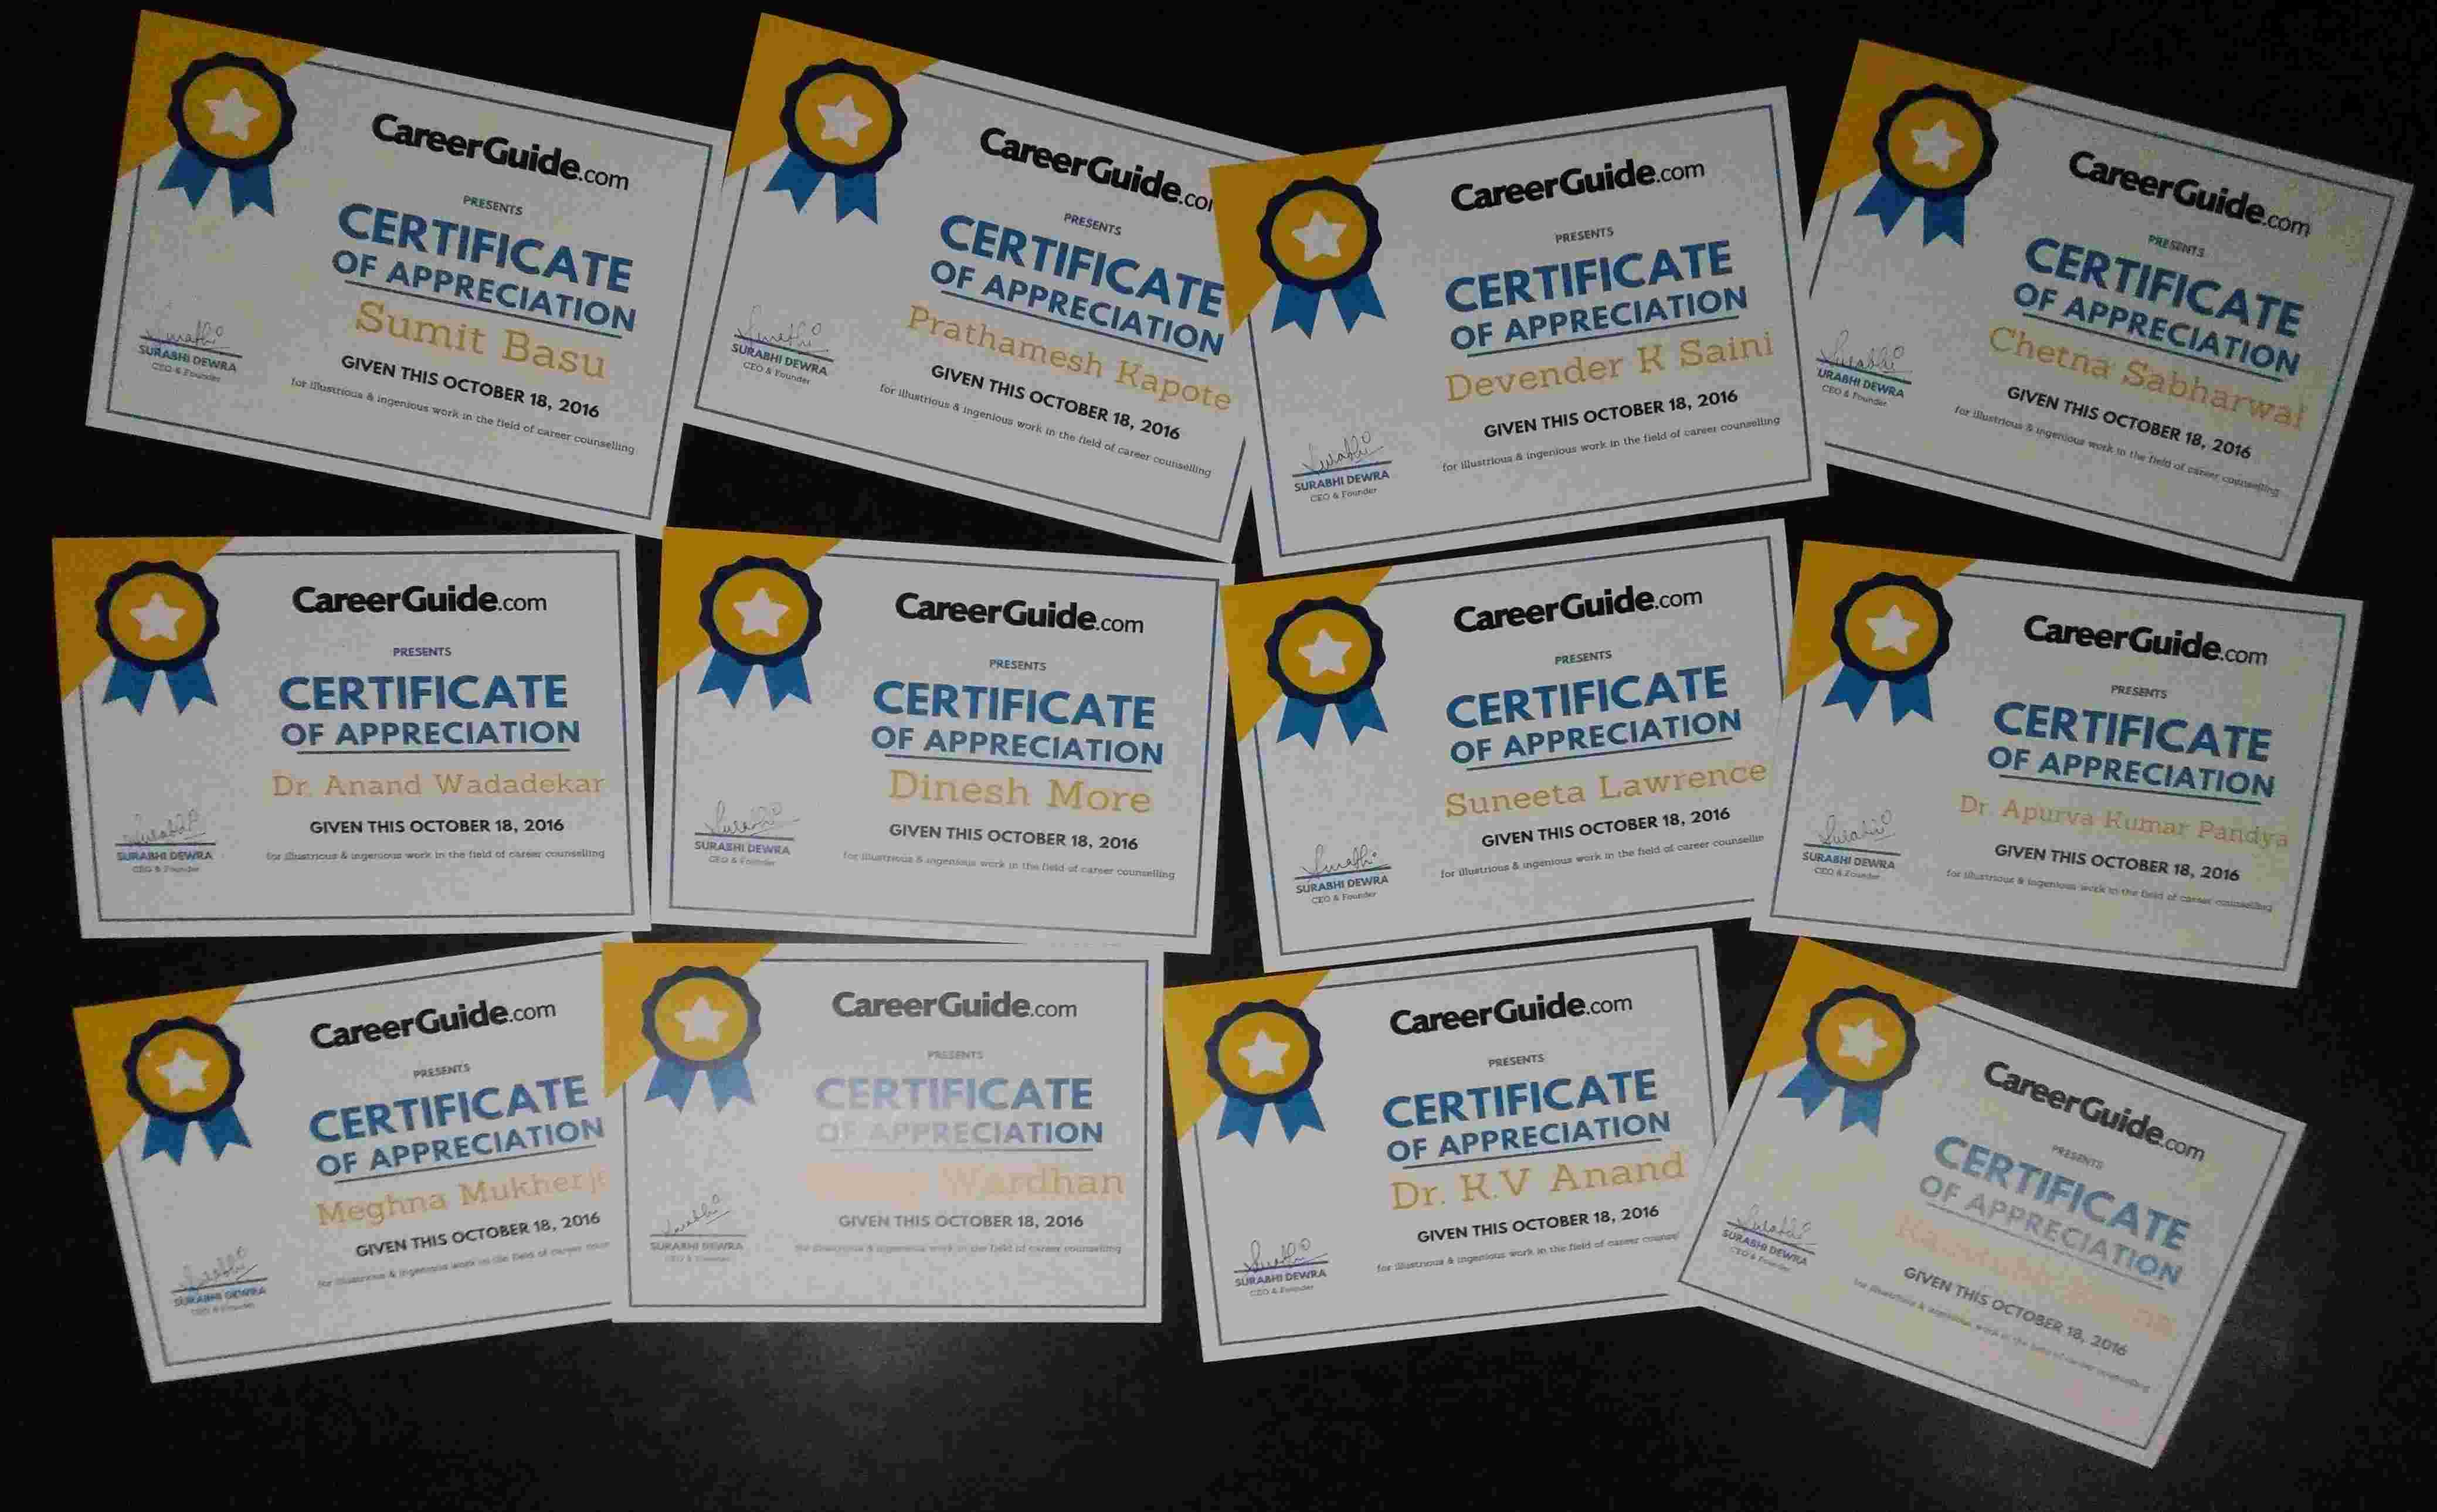 CareerGuide Certifies Career Counsellors